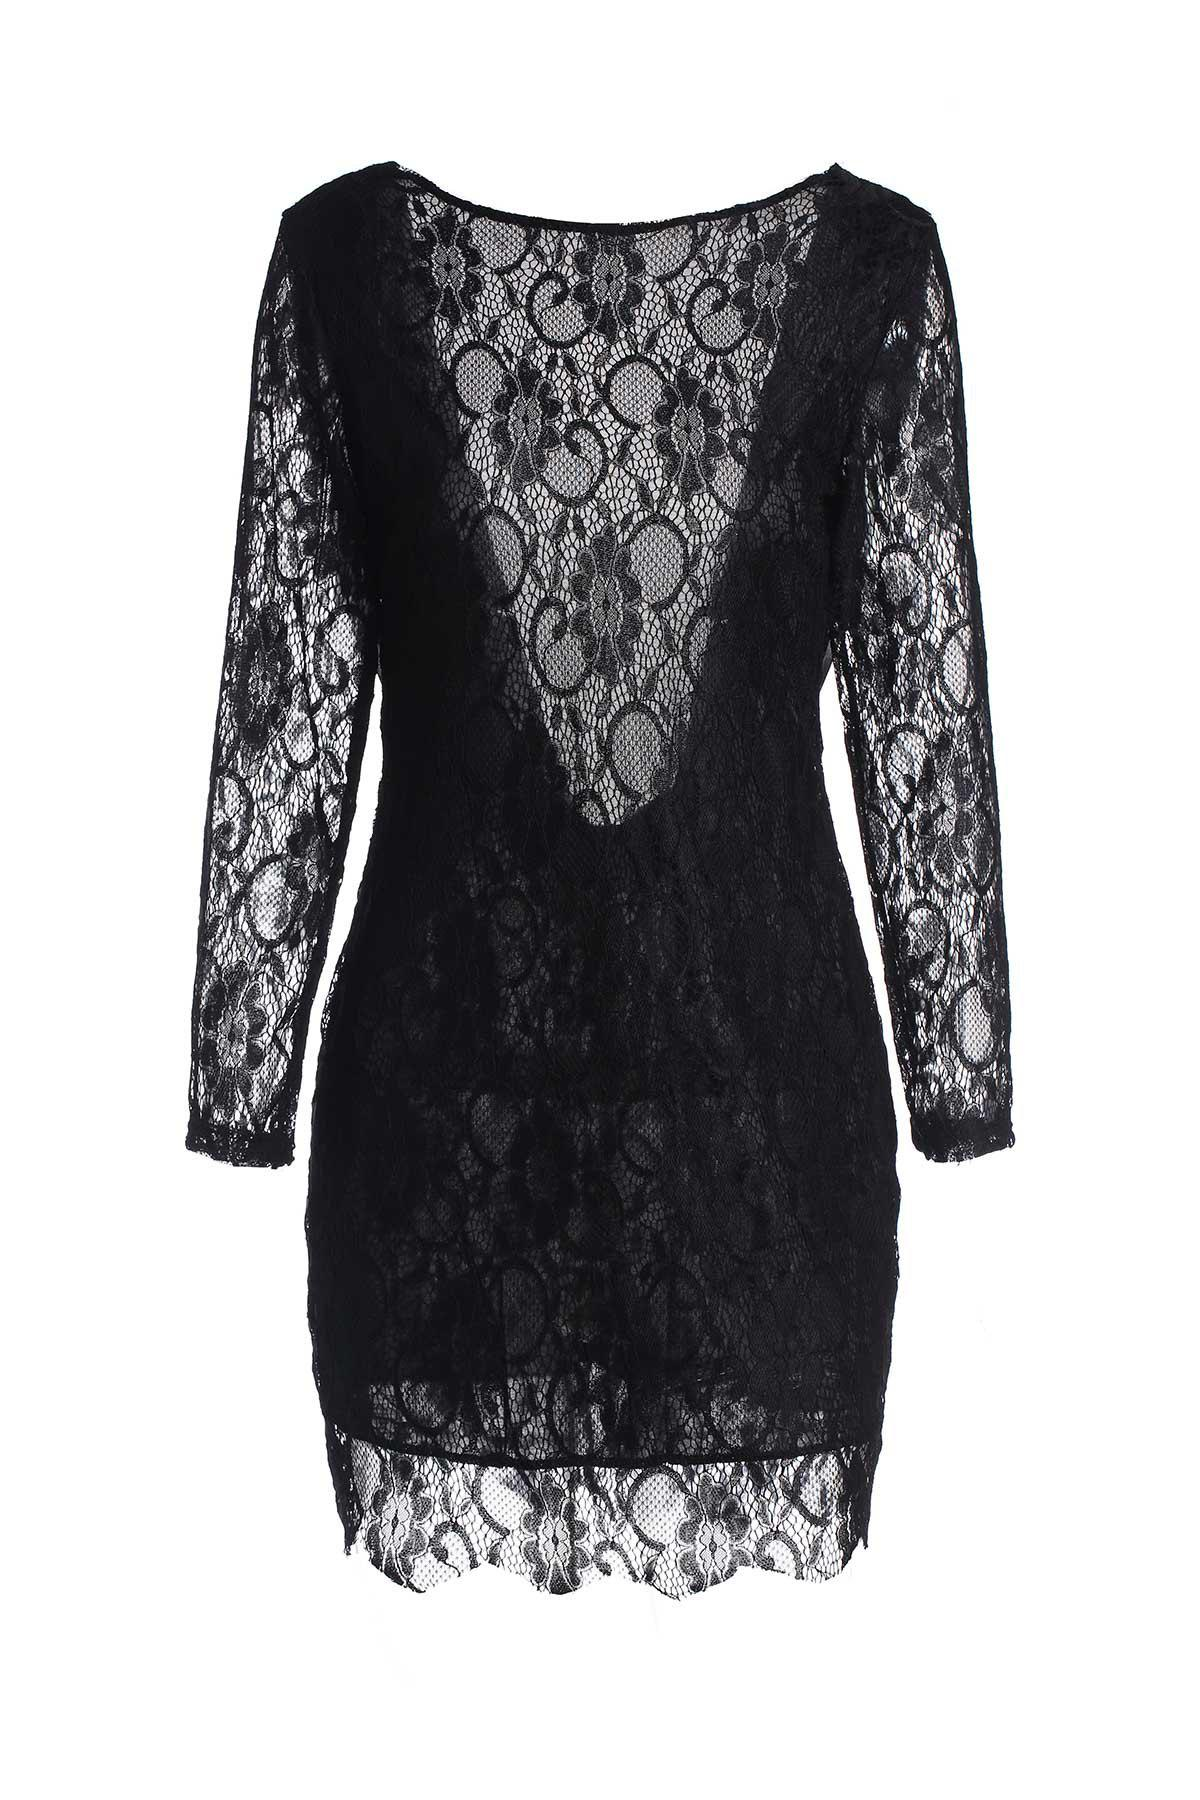 Elegant Jewel Neck Long Sleeve Backless Lace Dress For Women